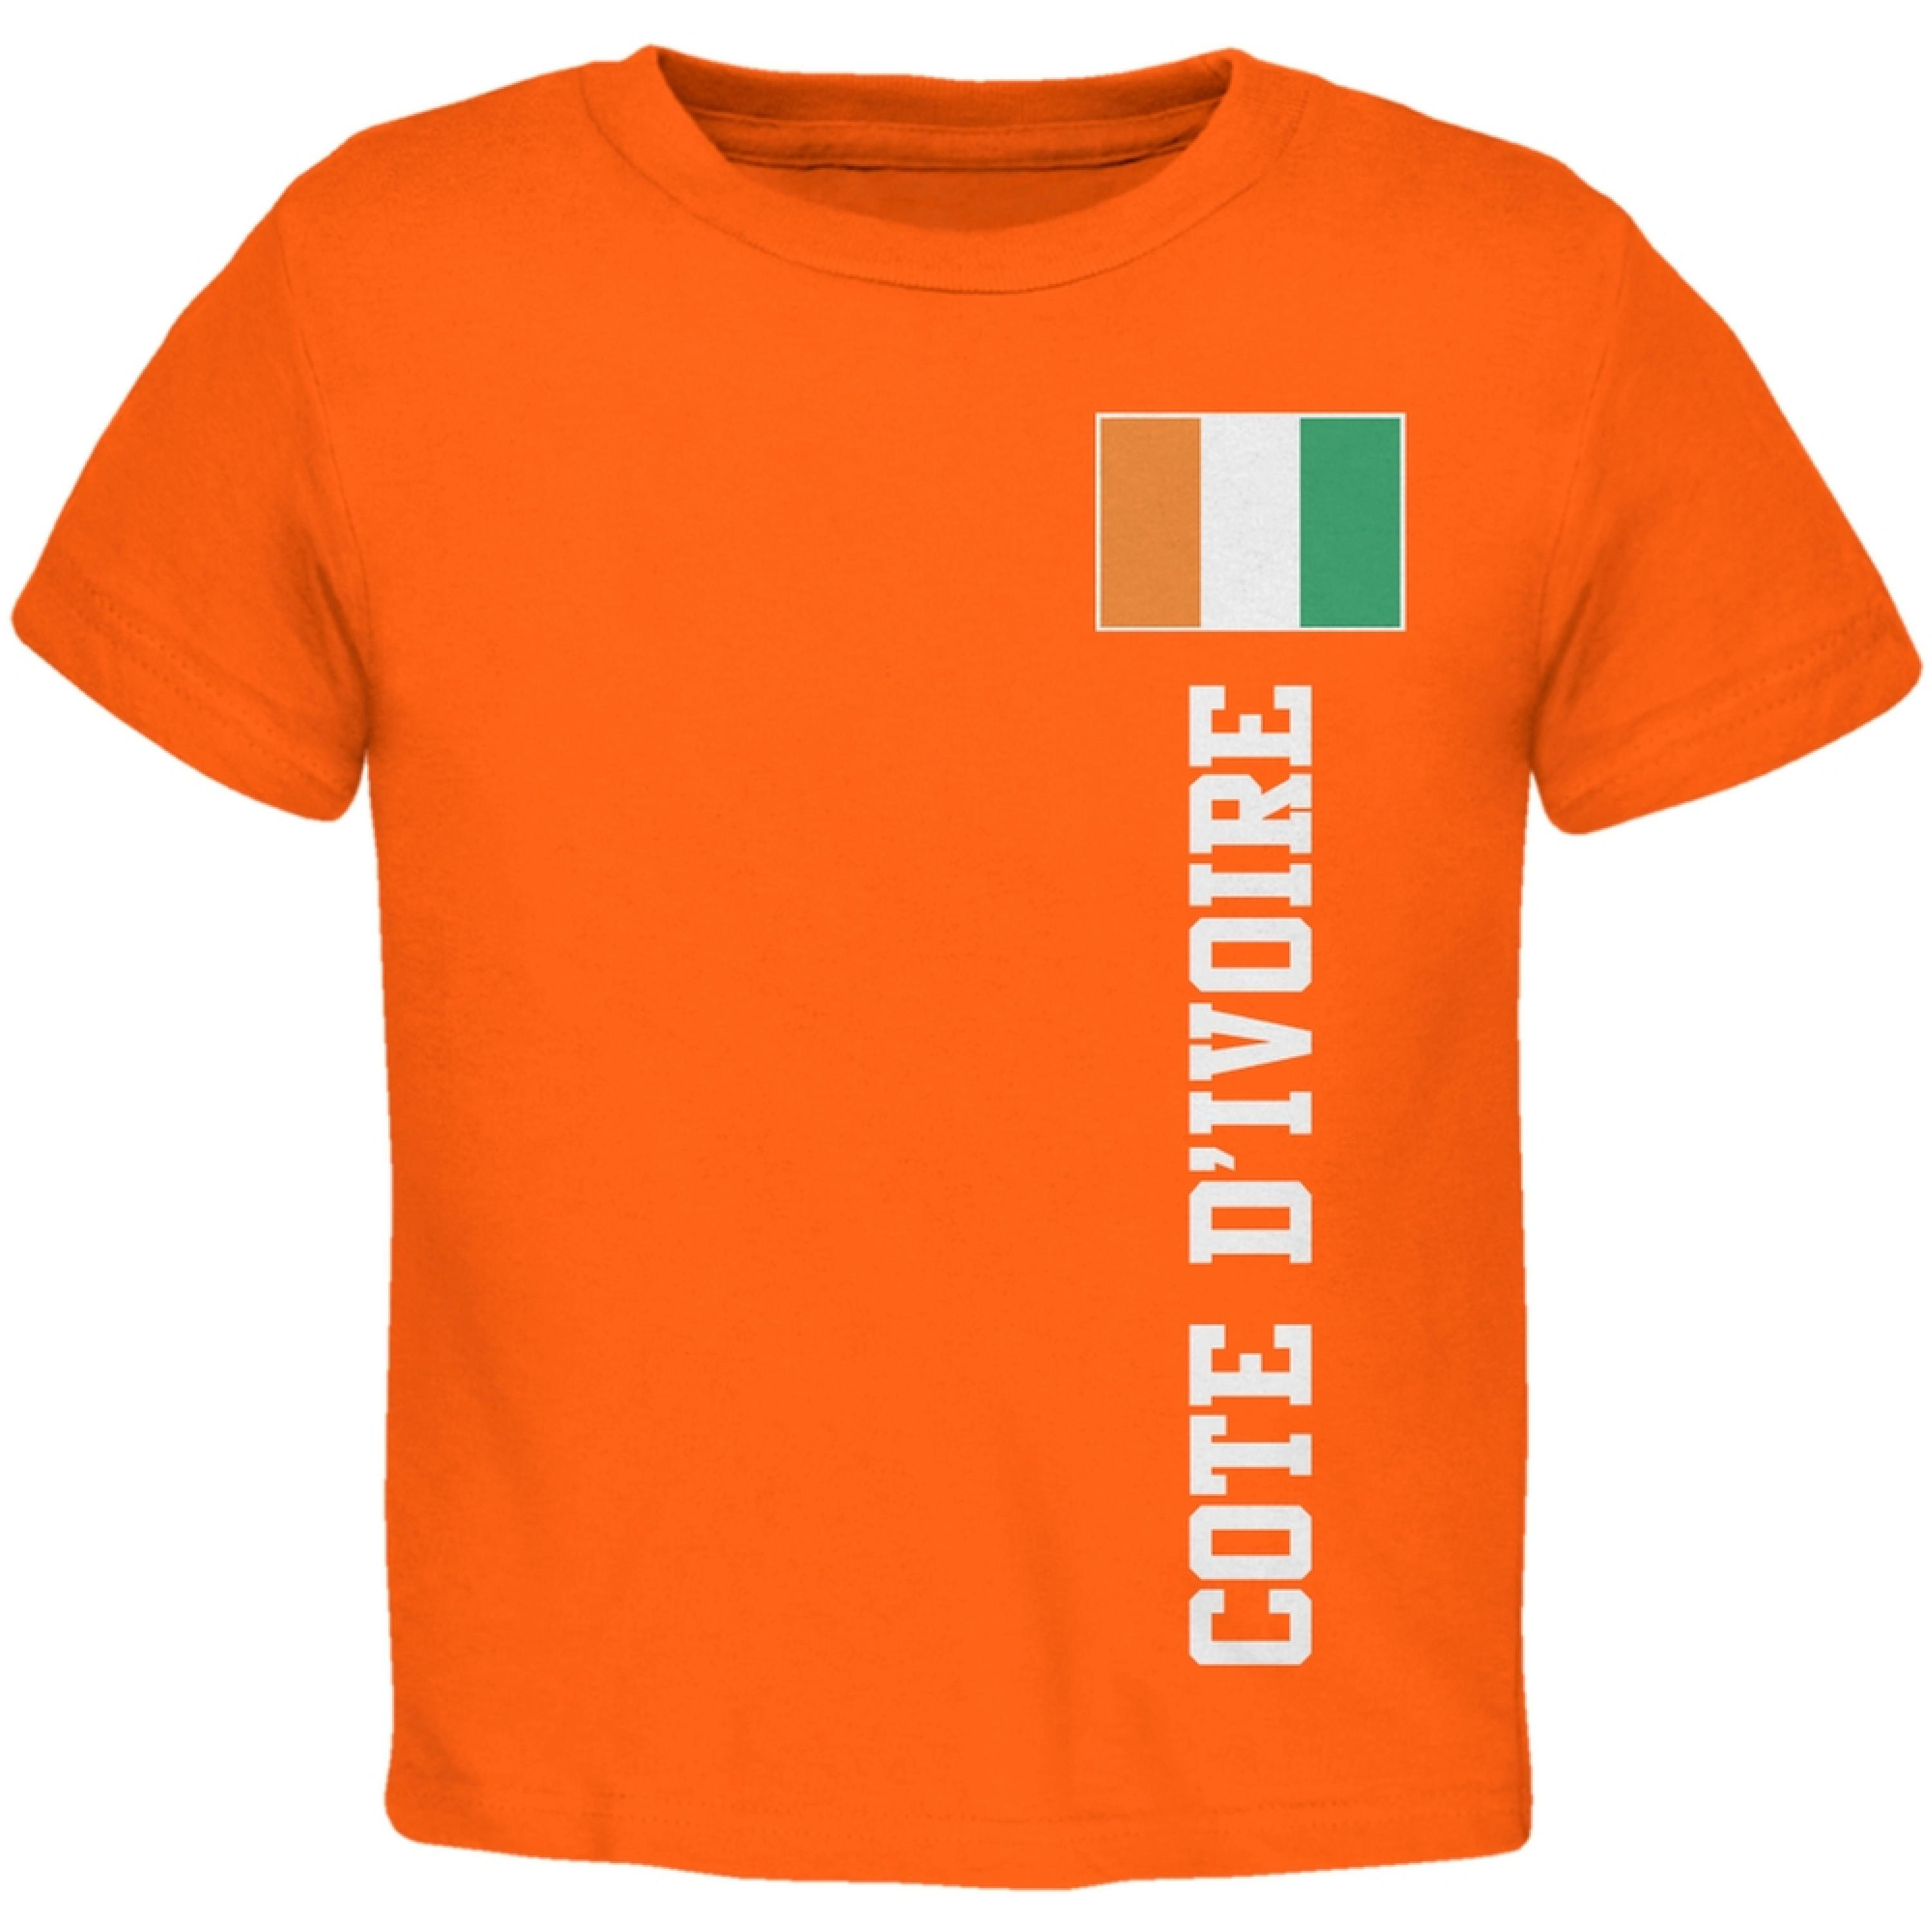 World Cup Cote D'Ivoire Orange Toddler T-Shirt